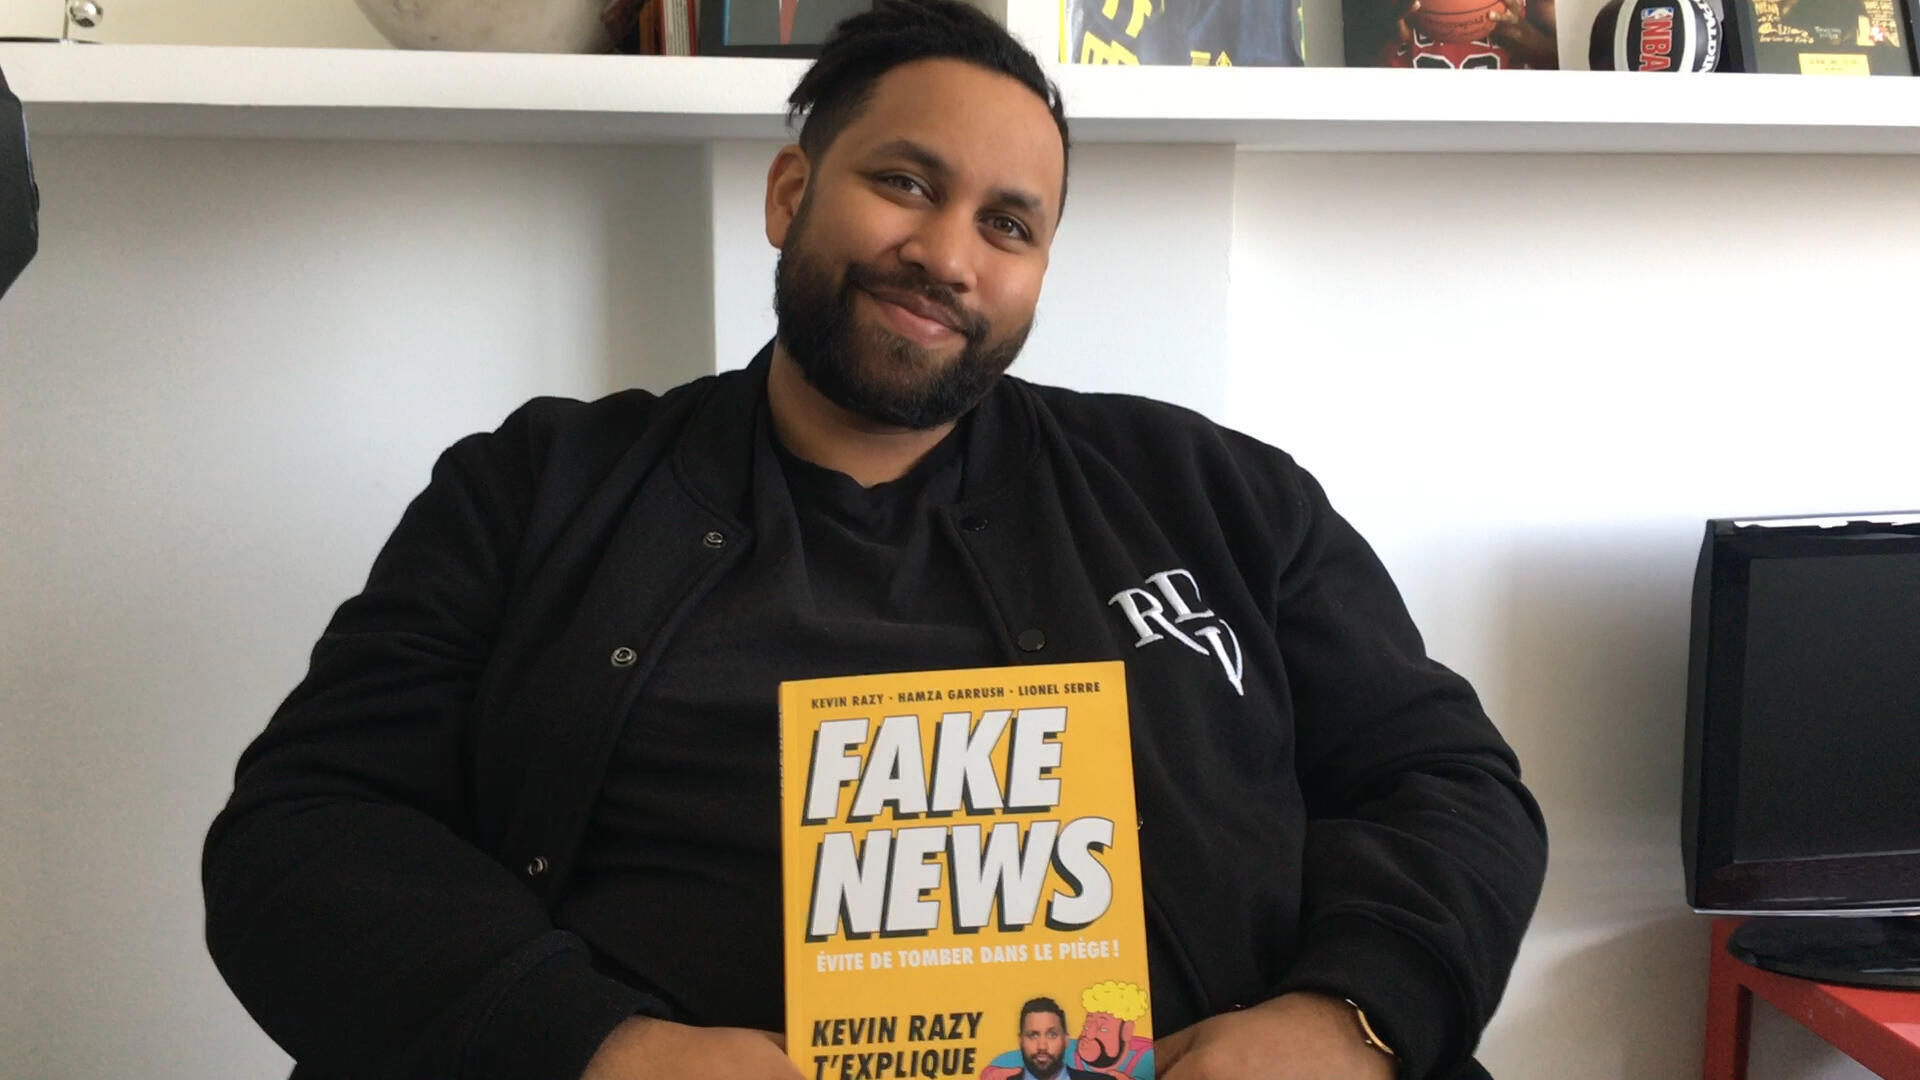 French comedian and television host Kevin Razy with his new book, Fake News: How to Avoid the Trap.